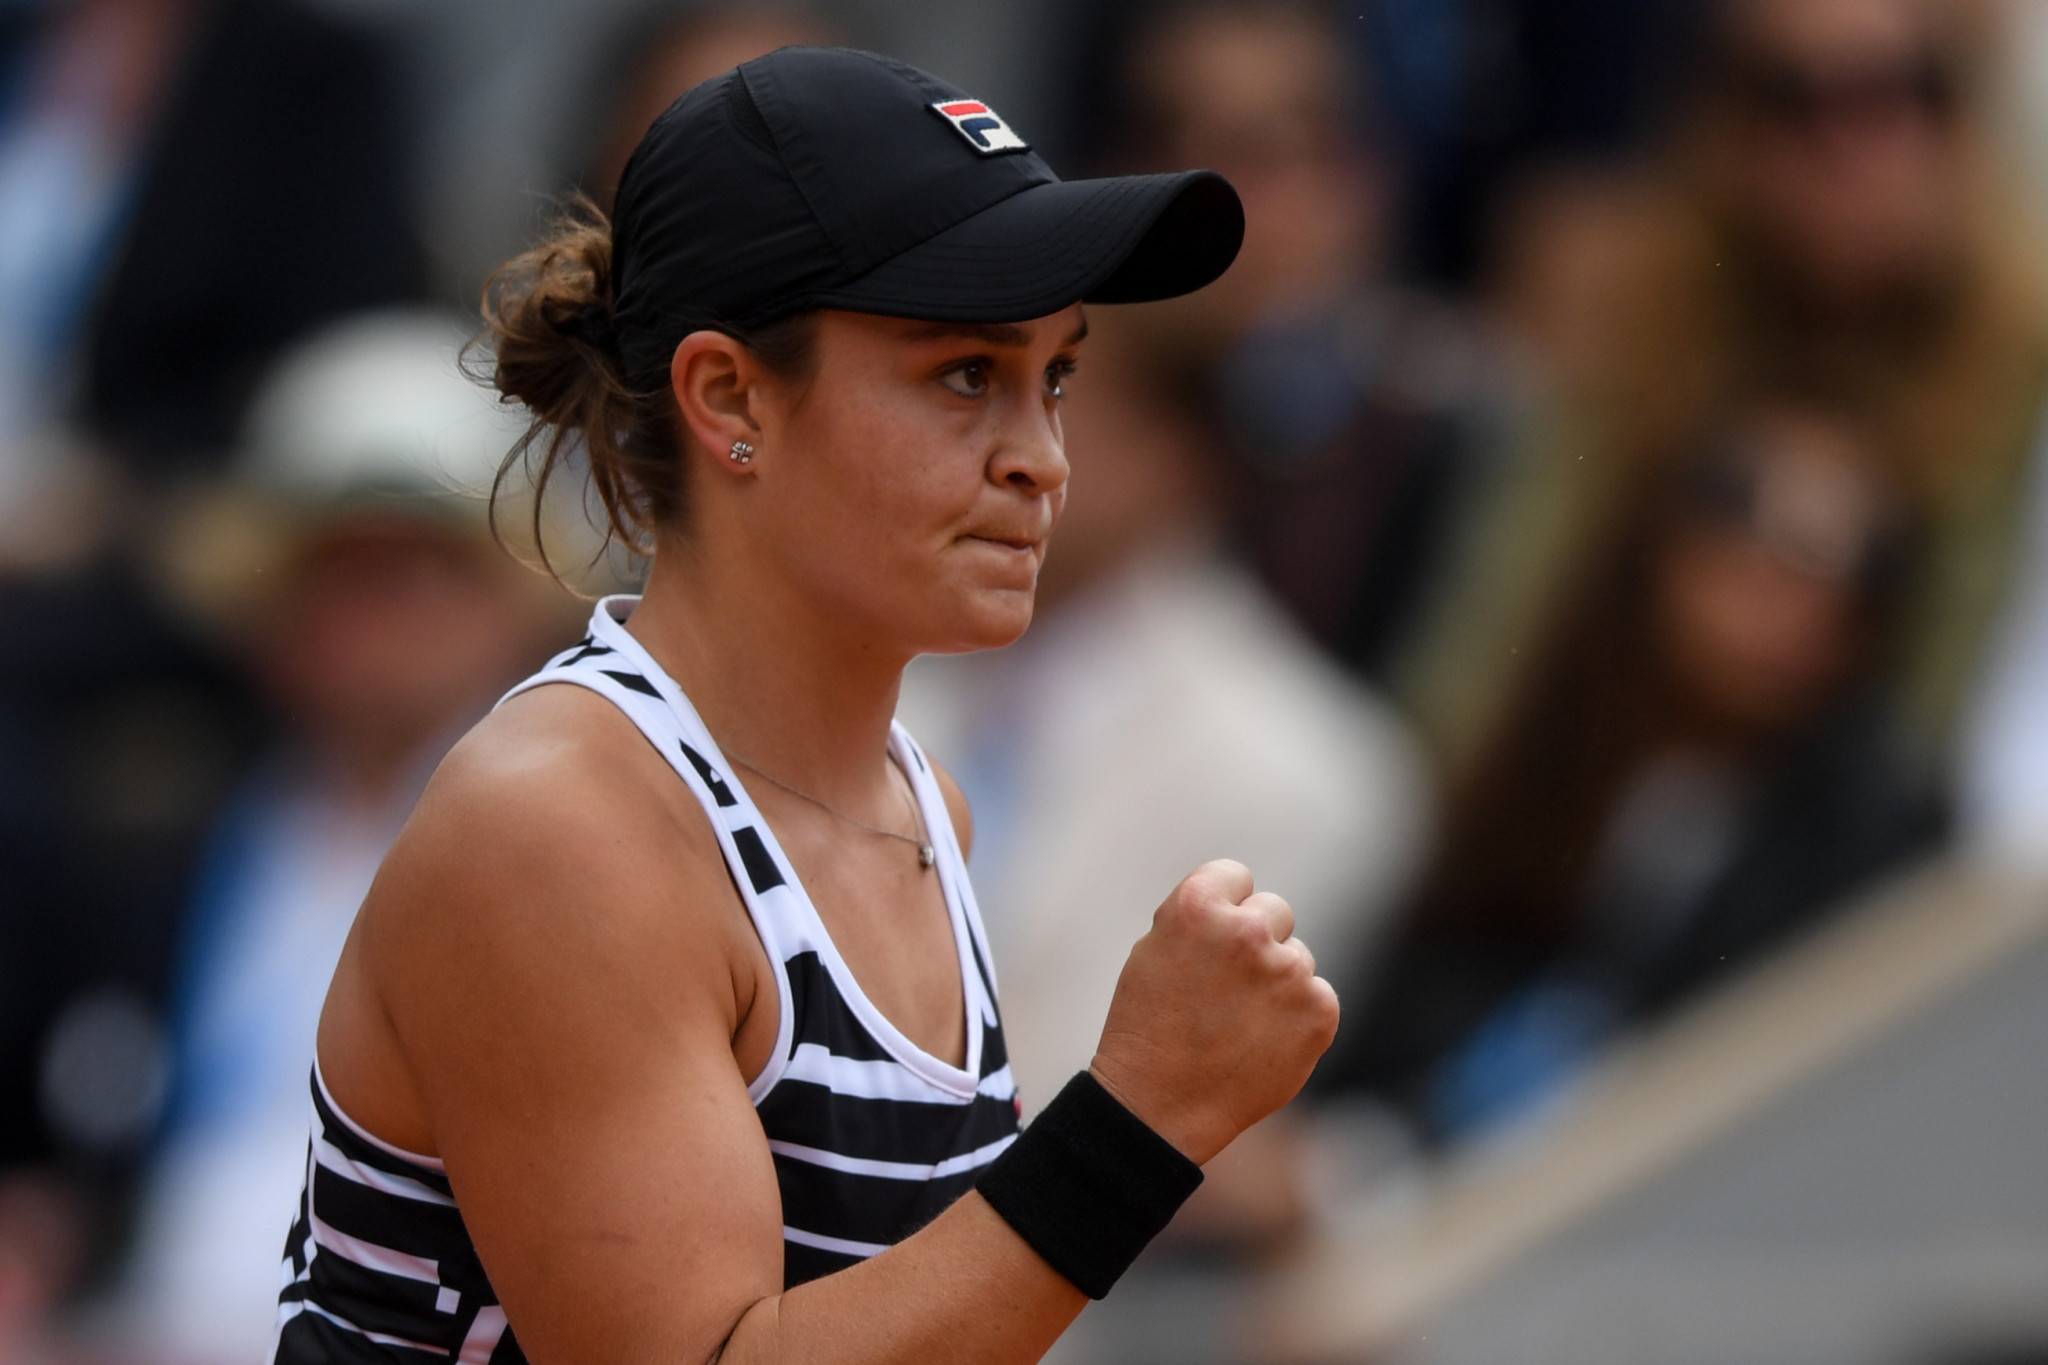 Eighth seed Barty pumps a fist after getting a crucial point in the women's French Open final ©Getty Images